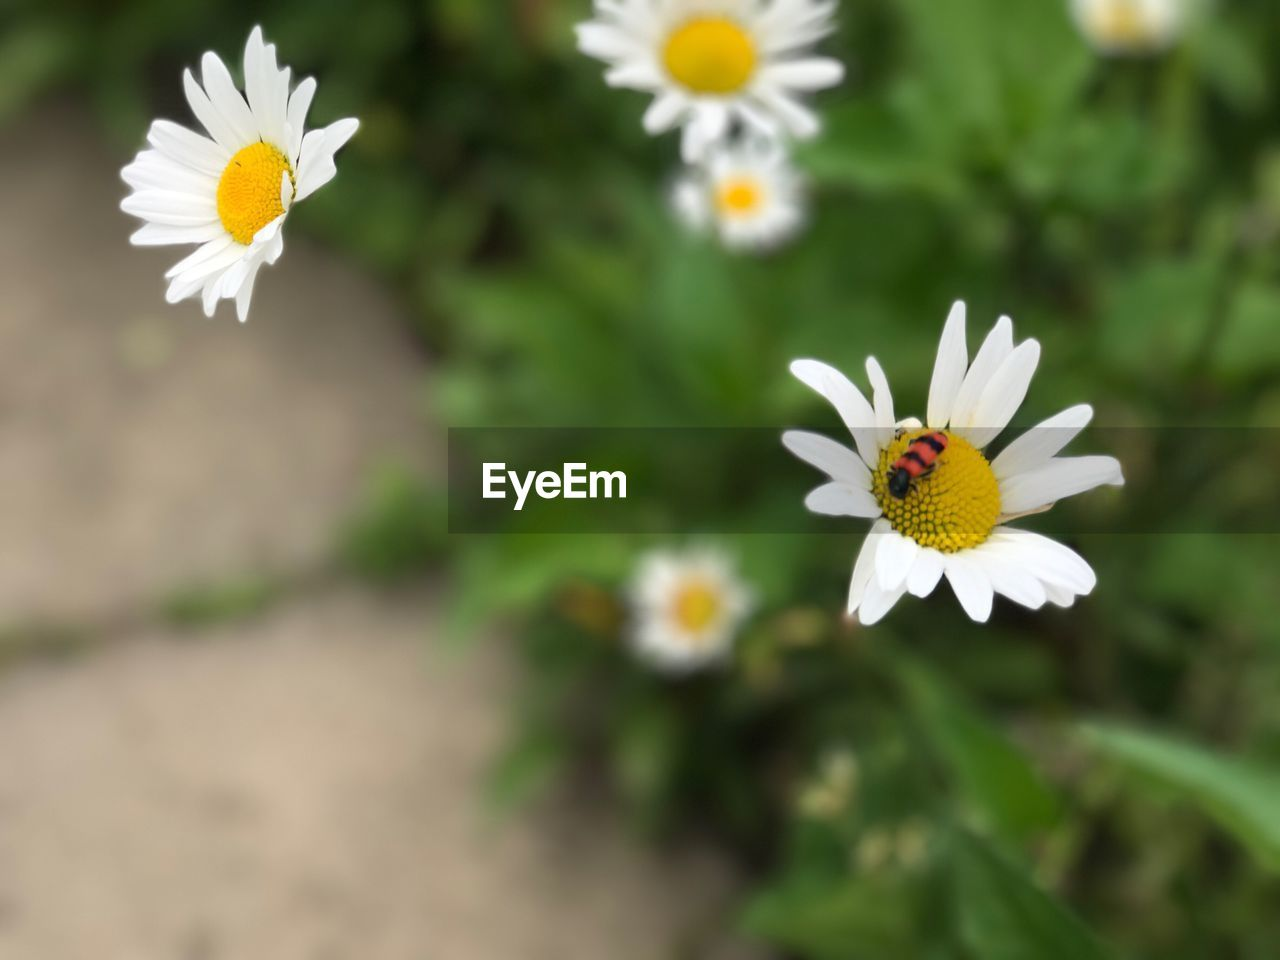 flower, petal, flower head, nature, fragility, freshness, daisy, white color, beauty in nature, growth, pollen, plant, blooming, yellow, outdoors, close-up, no people, day